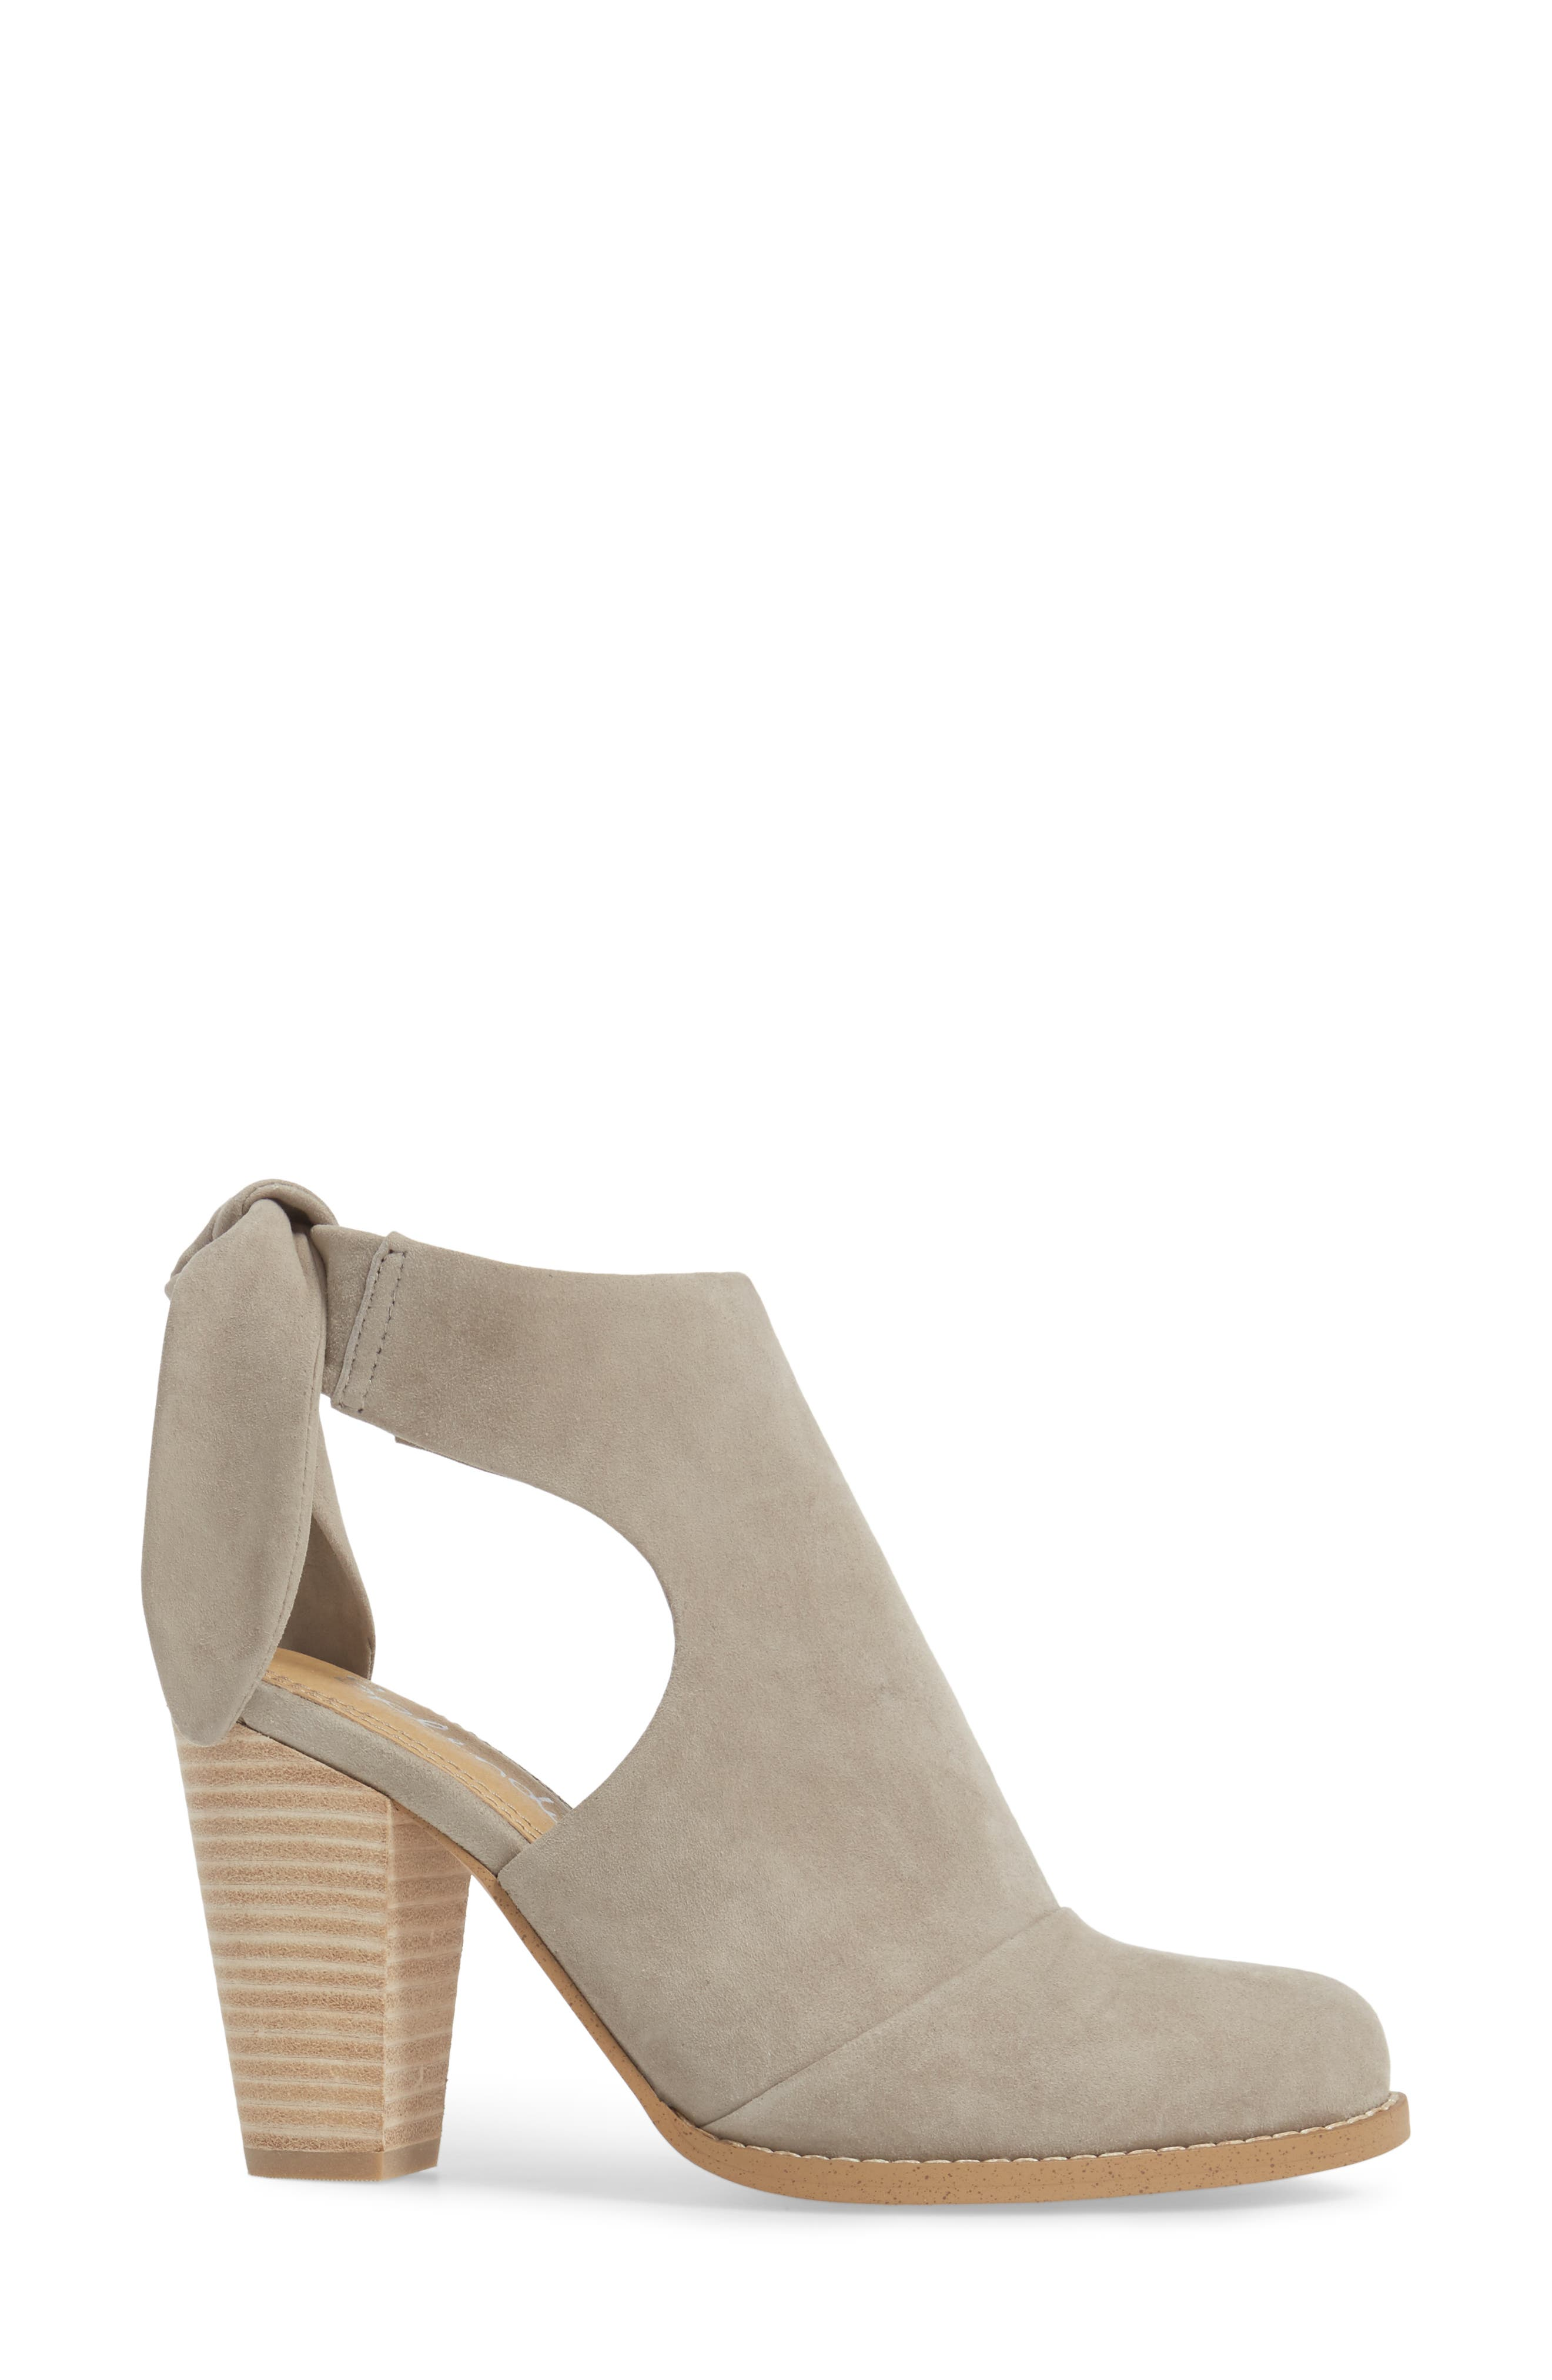 Danae Stacked Heel Bootie,                             Alternate thumbnail 6, color,